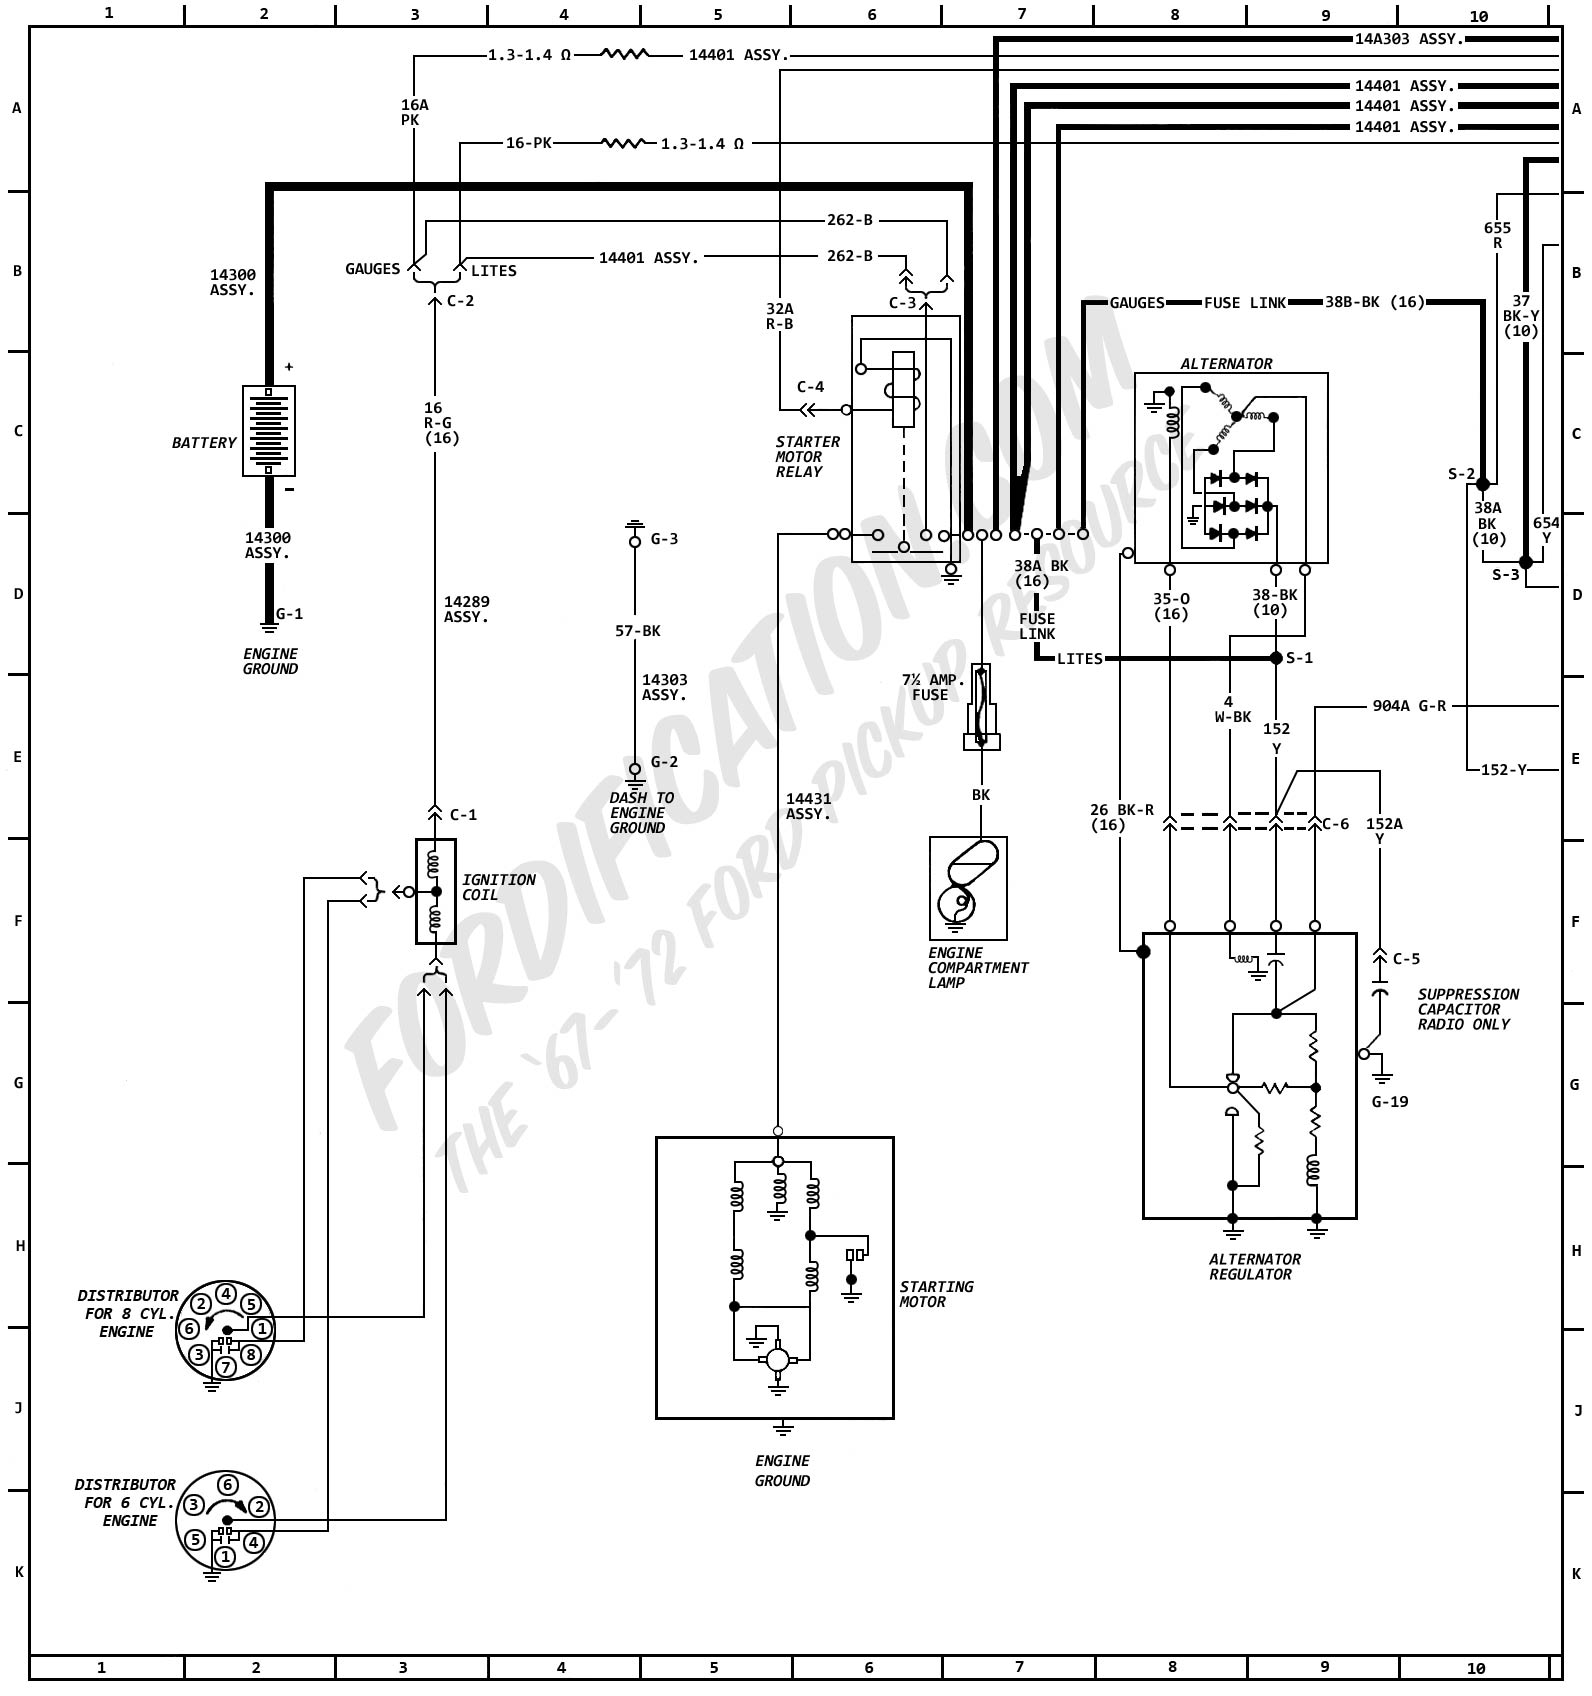 1972MasterWiring_01 1972 ford truck wiring diagrams fordification com 1972 ford truck wiring diagram at gsmx.co